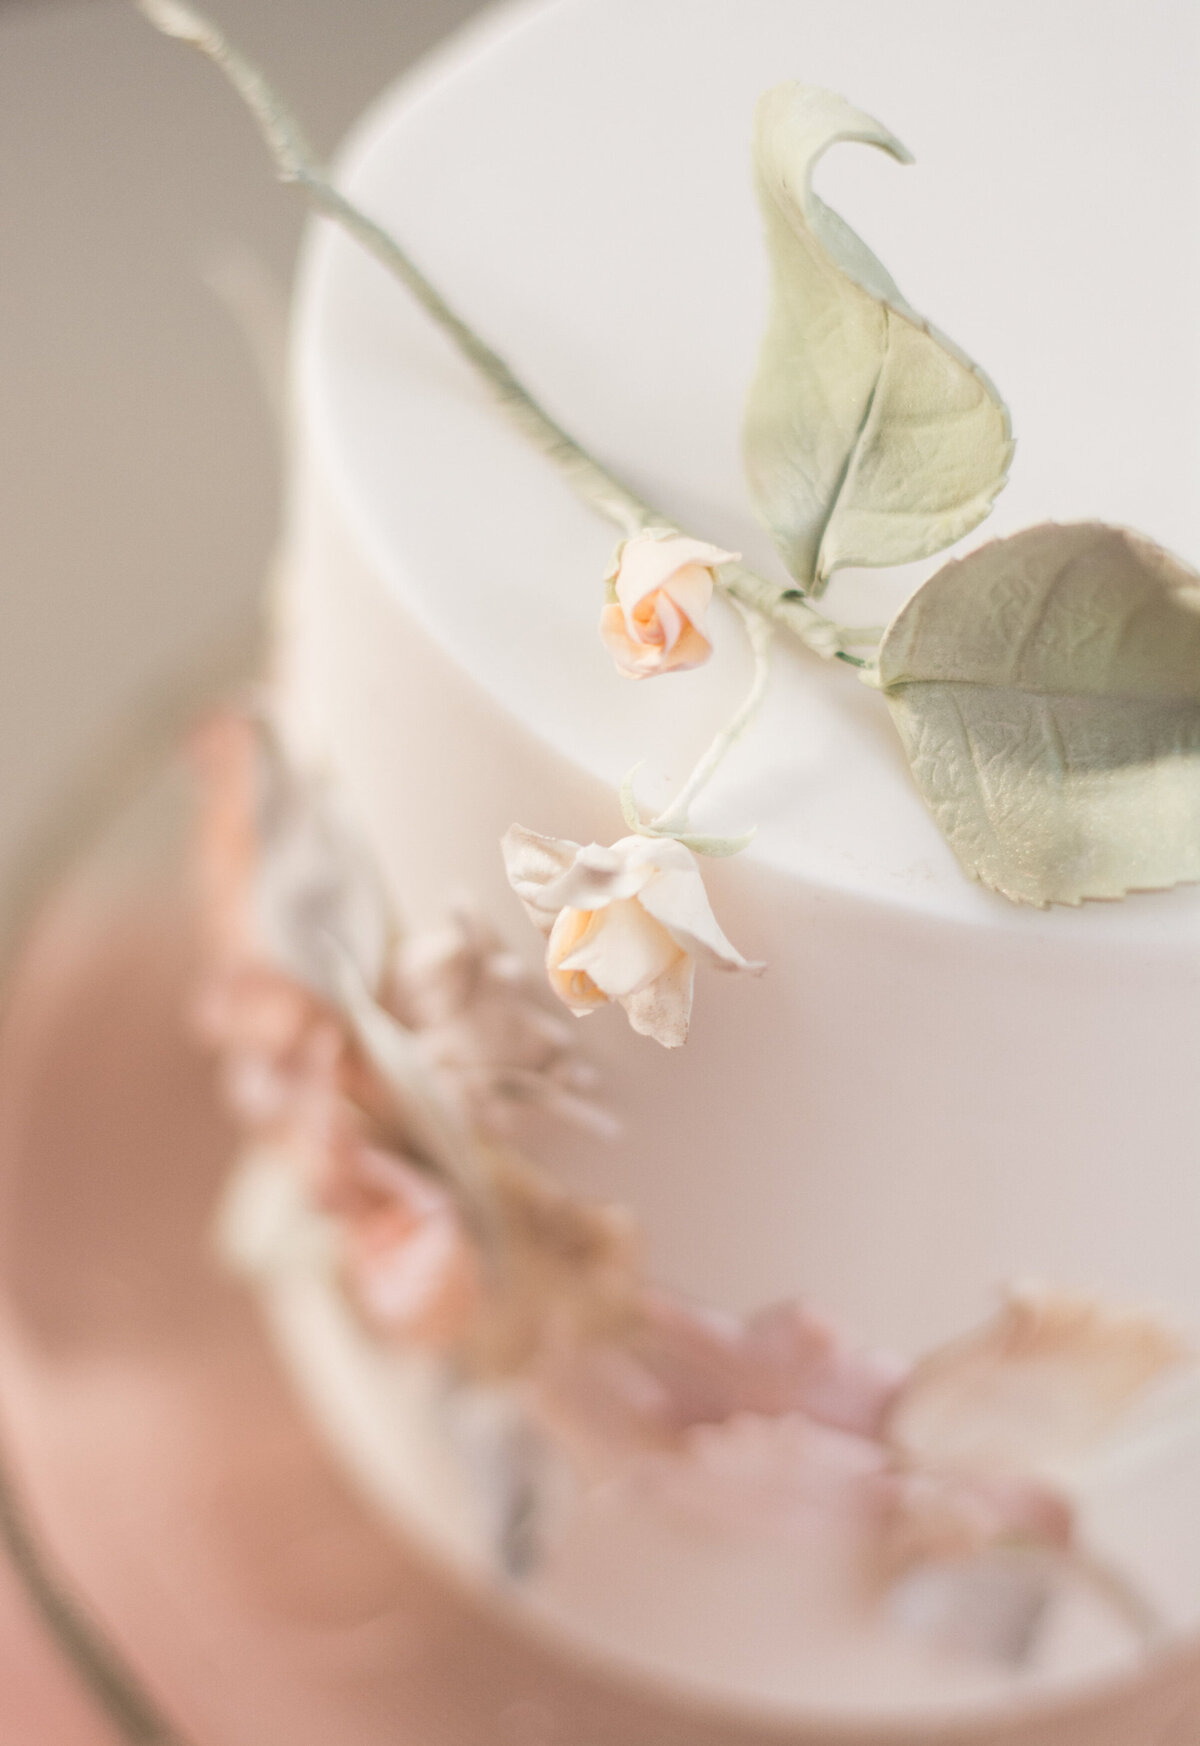 Up close detail shot of handmade flowers on cake